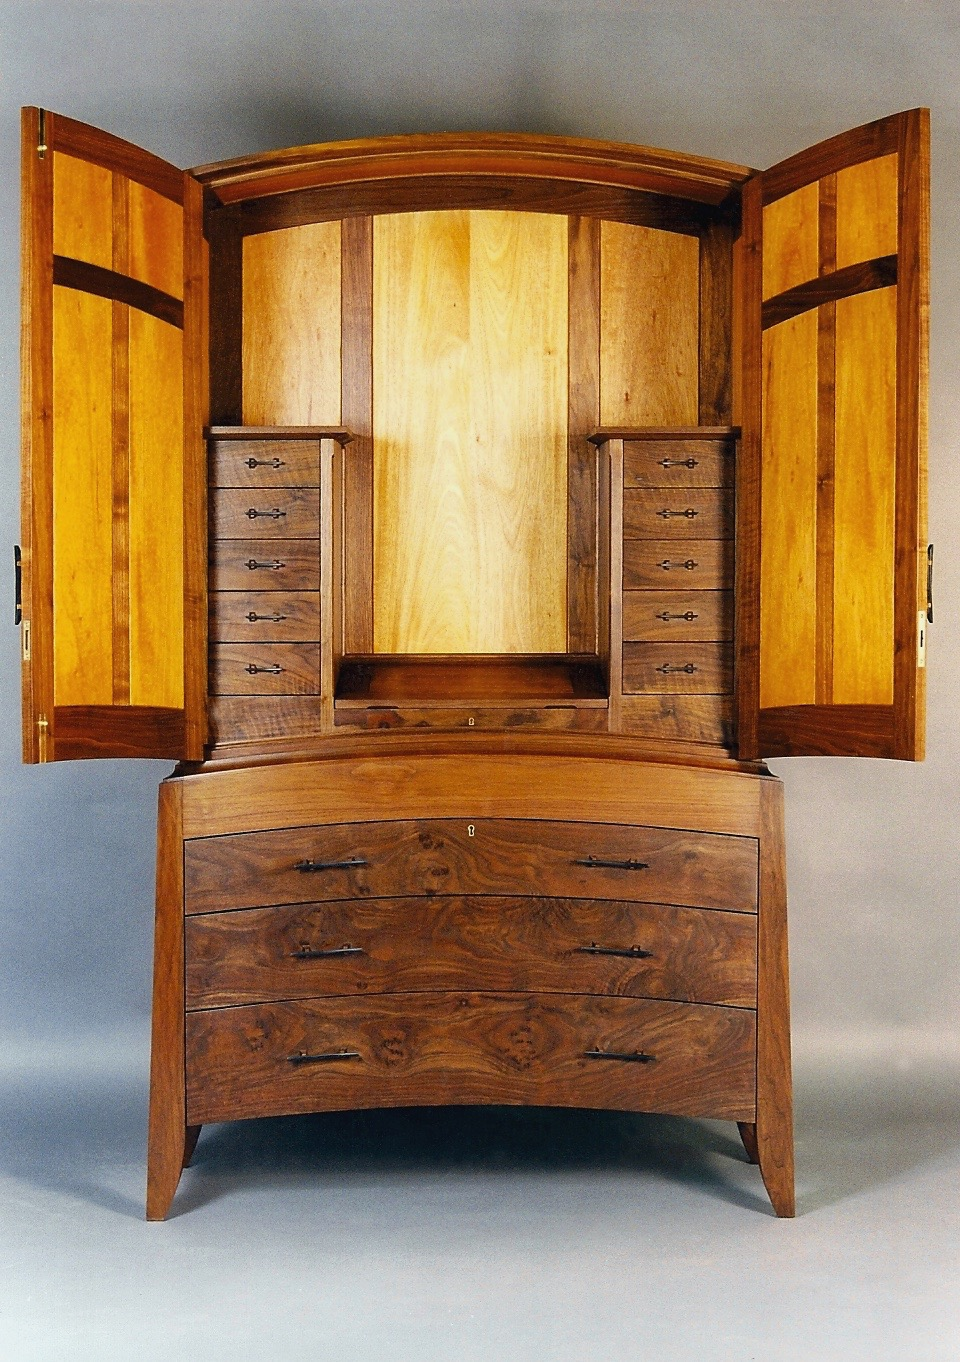 Harbor interior detail - designed to house a jewelry collection, hand carved bog oak pulls